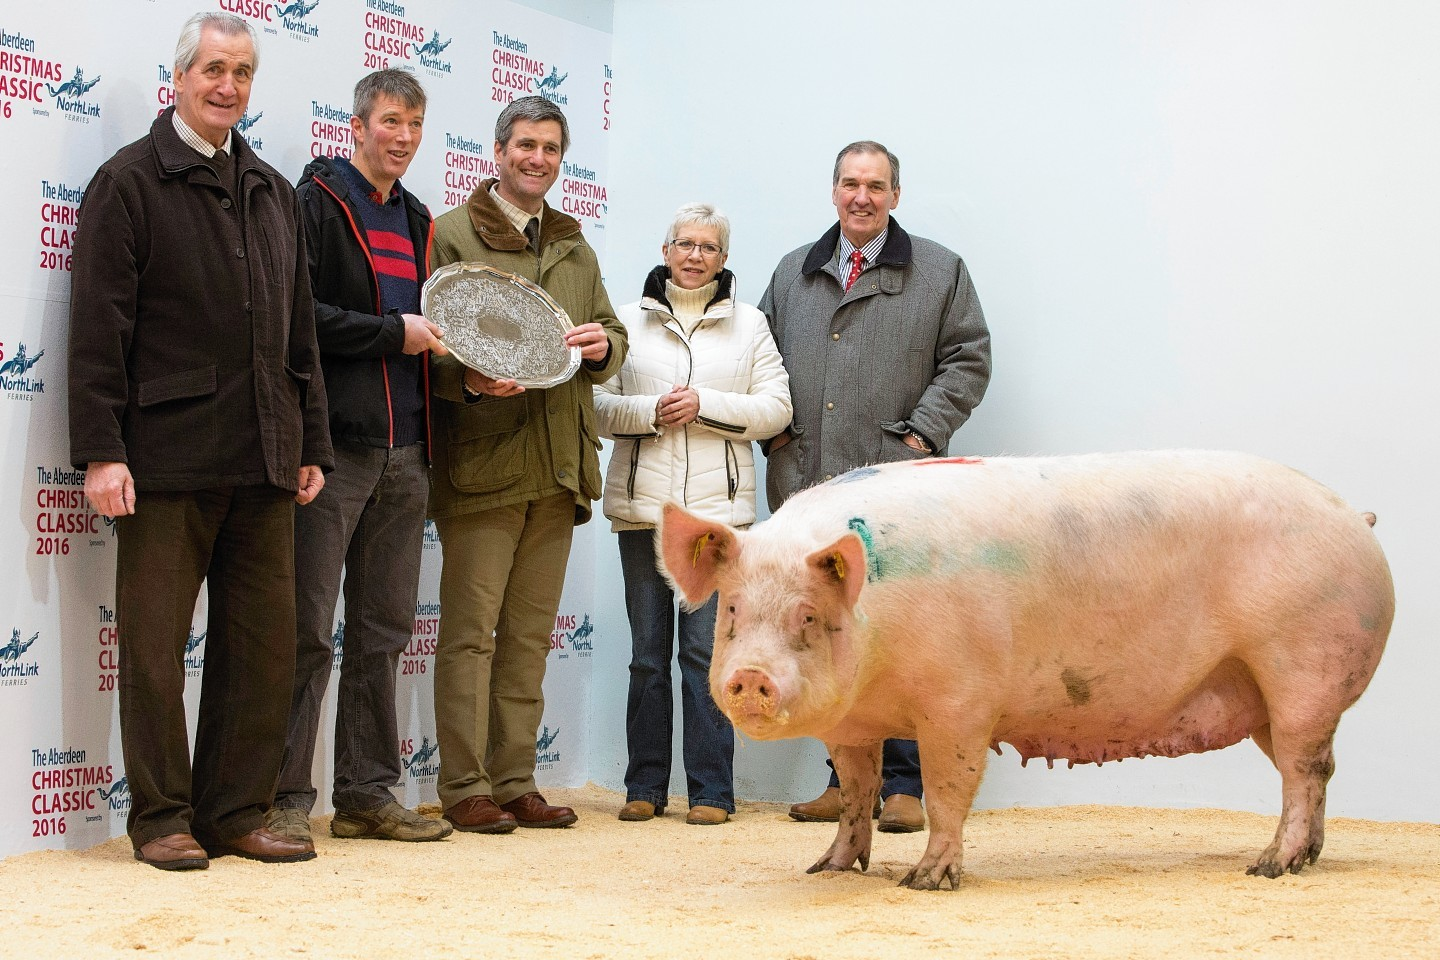 Joe Cheale, Mark Strachan, Adam Cheale, Jenny Elrick from ANM and Edward Johnston from Cheale Meats.